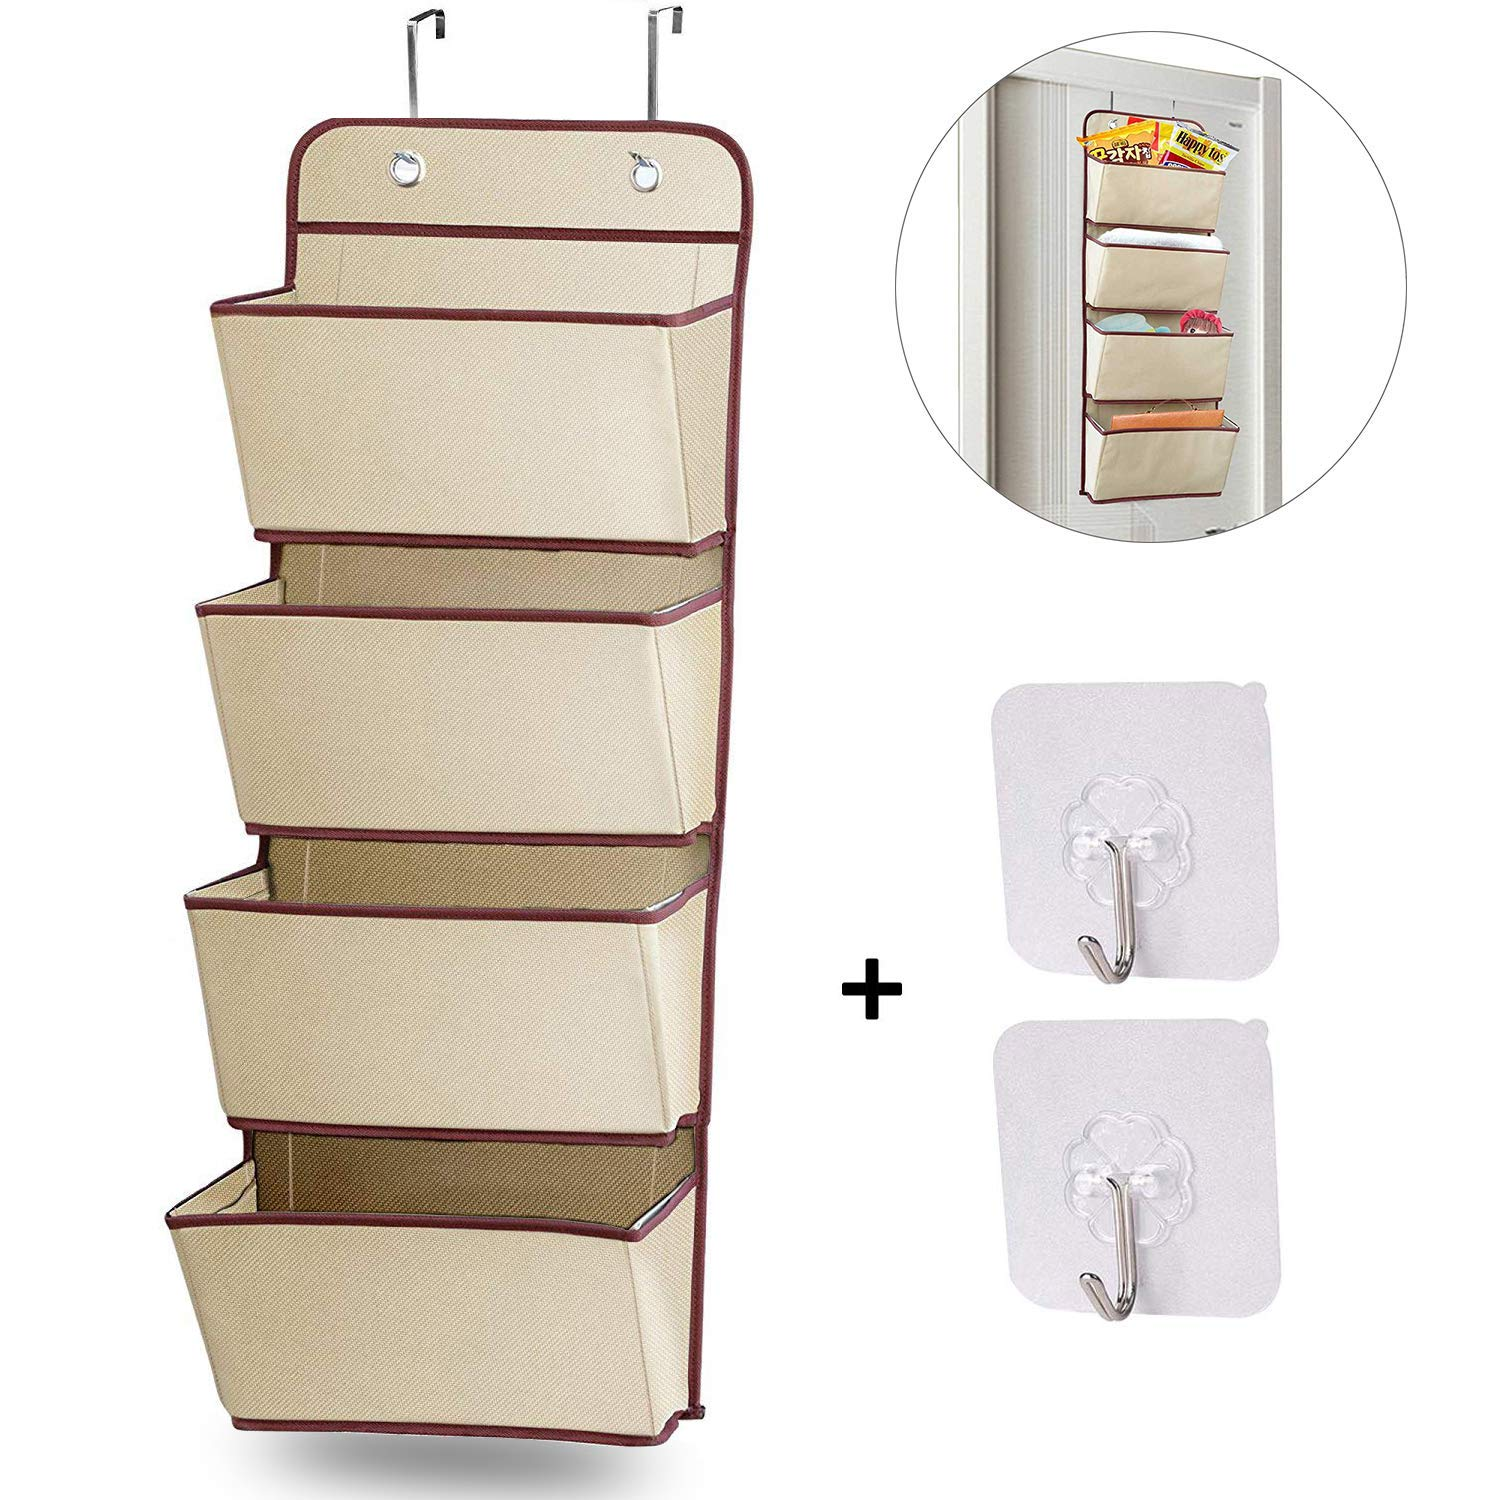 the best attitude 5ef31 cc8cc AMFINE Upgraded Over The Door Hanging Organizer - Closet Hanging Shelves -  Wall Mounted Hanging Storage Bags with 4 Pockets, Large (Simple-4P, Beige)